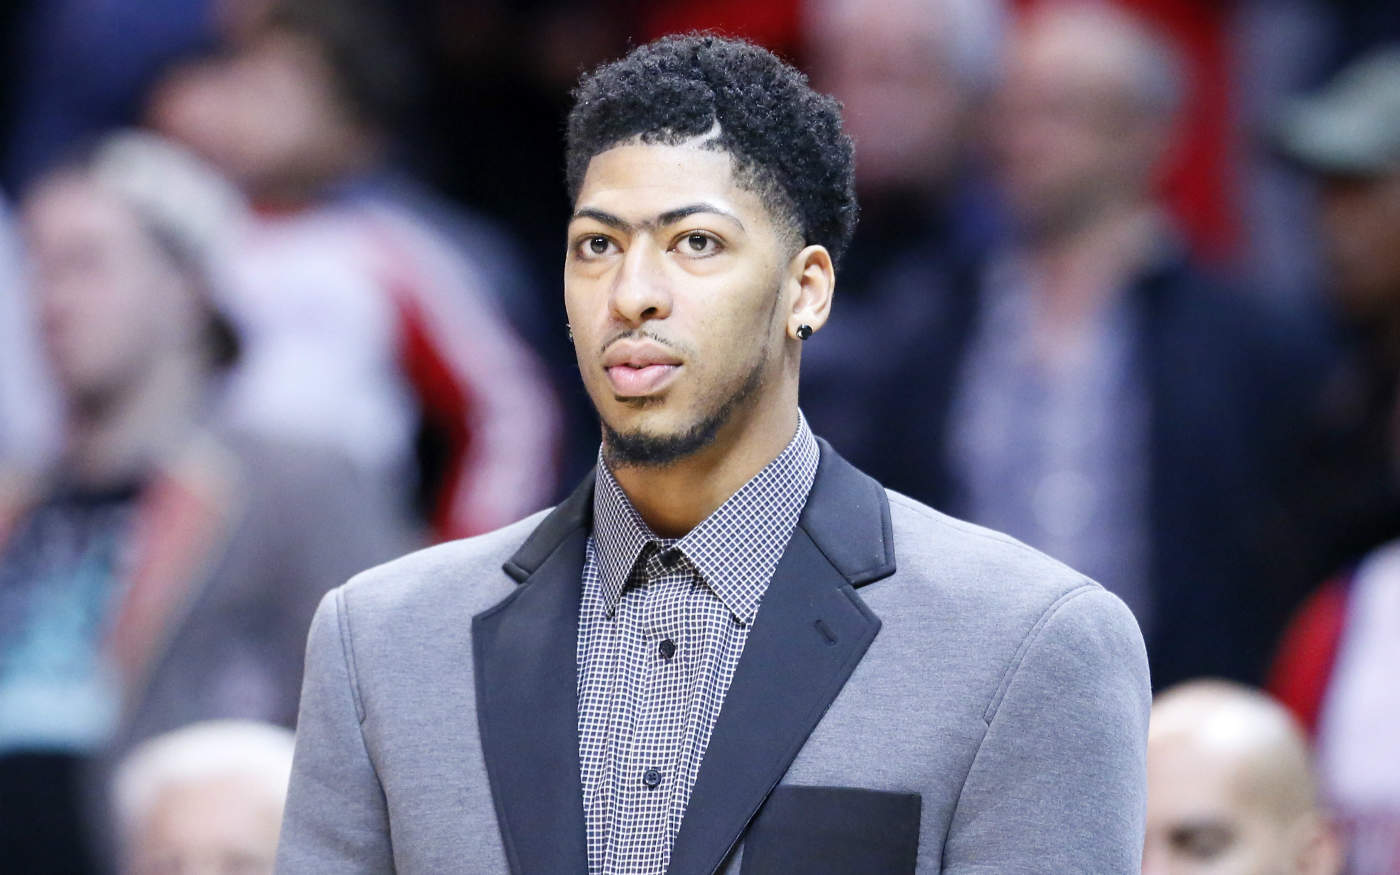 Anthony Davis recalé d'un resto parce qu'il portait un sweat à capuche…